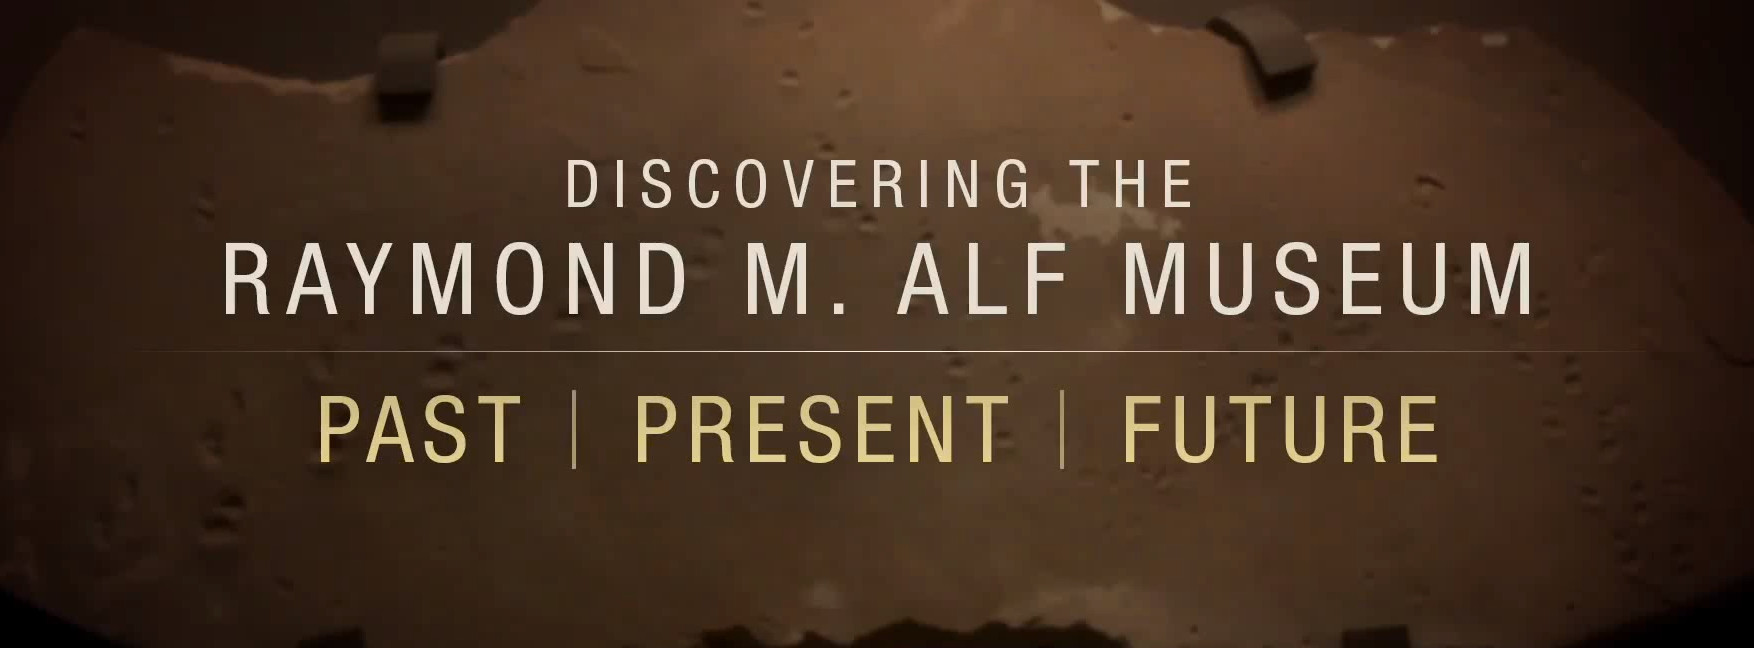 Discovering the Alf Museum